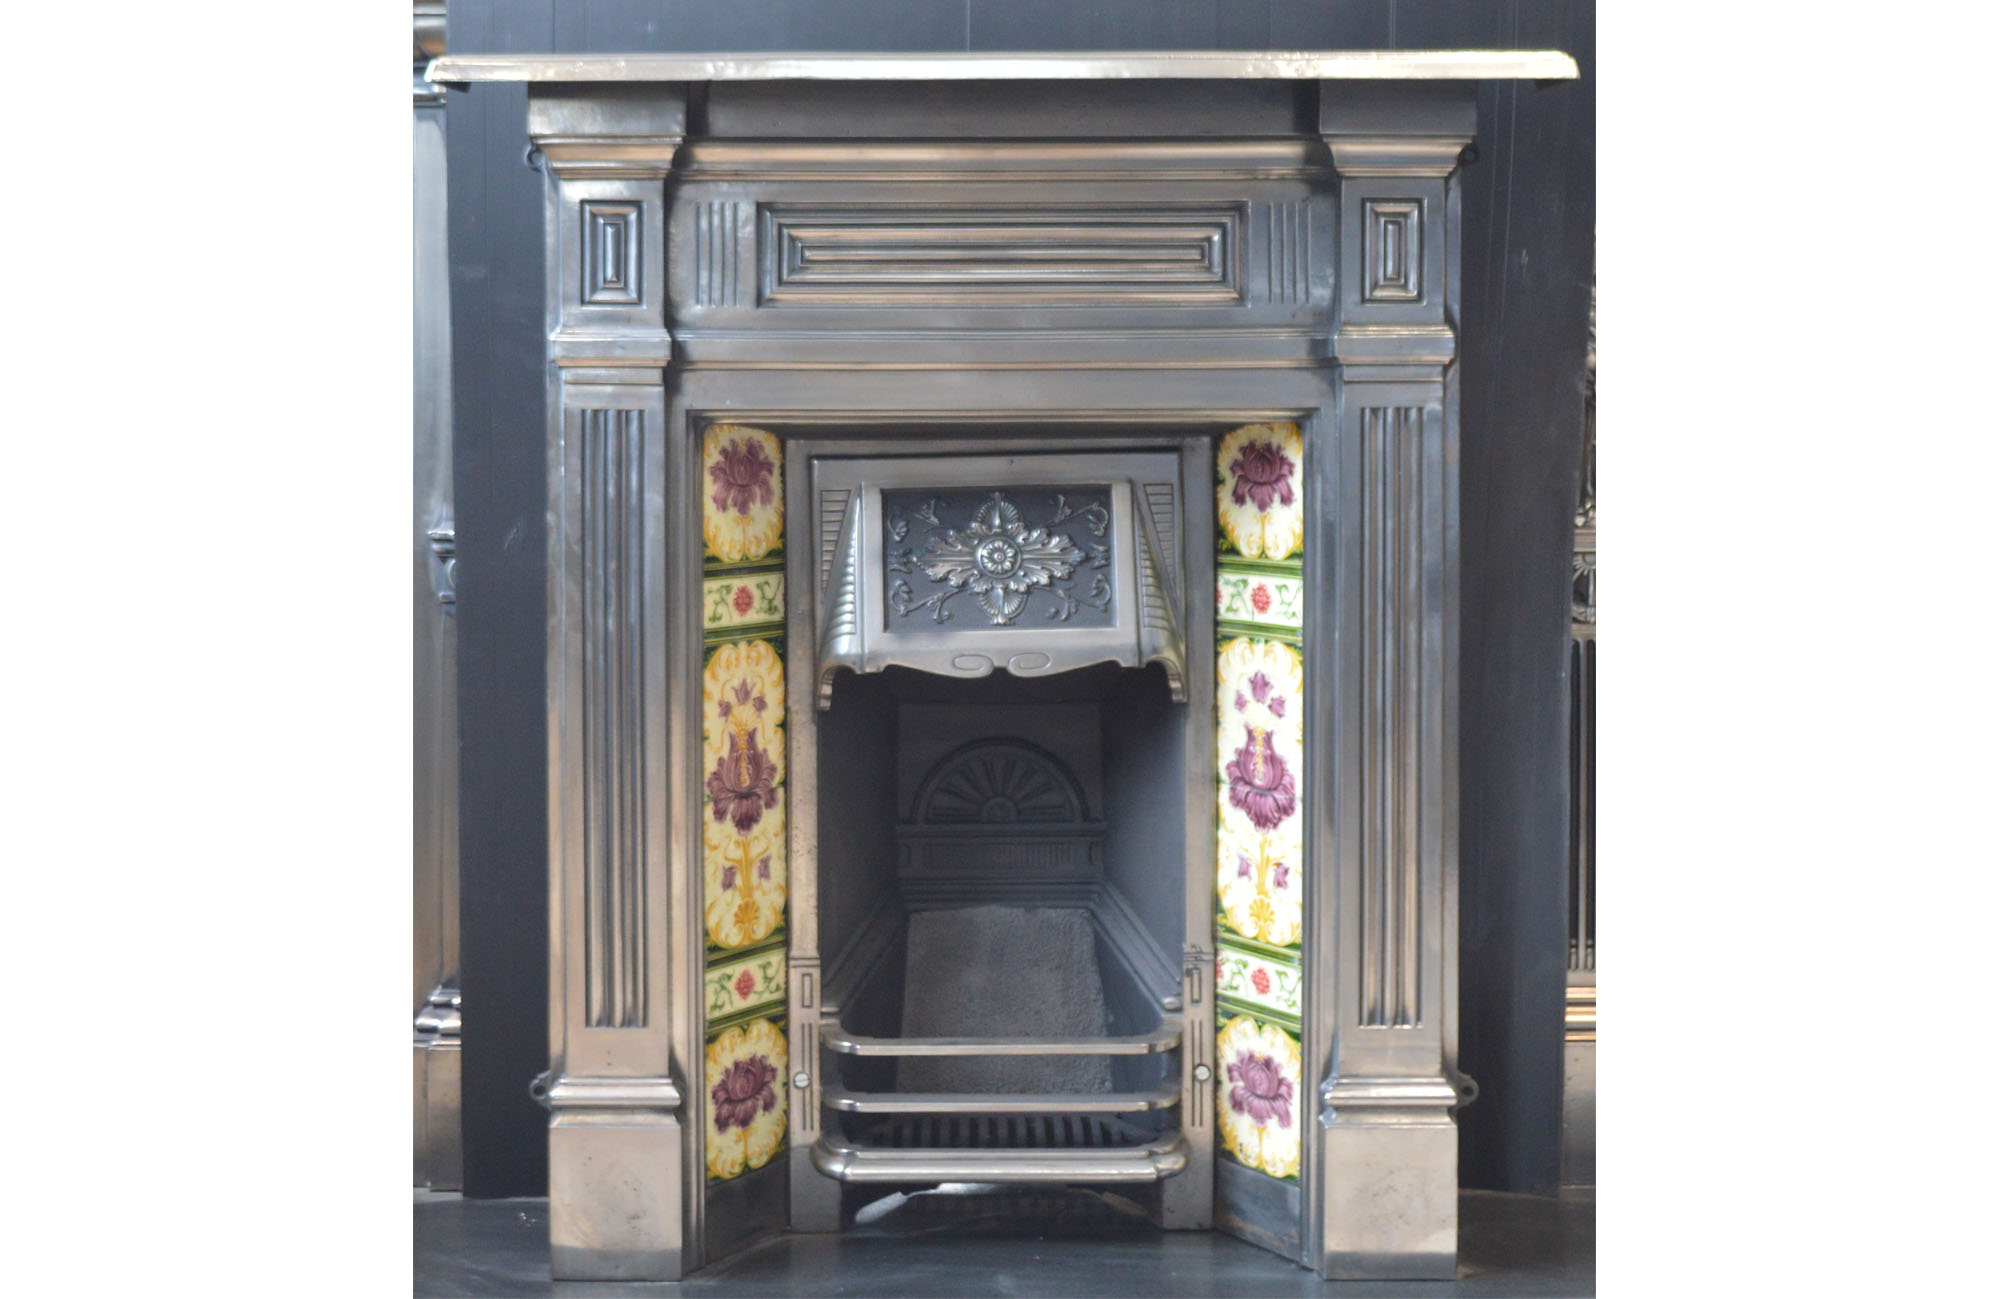 s fixing prevshw fireplace help gallery tiles my two here inch the mantel holes antique in